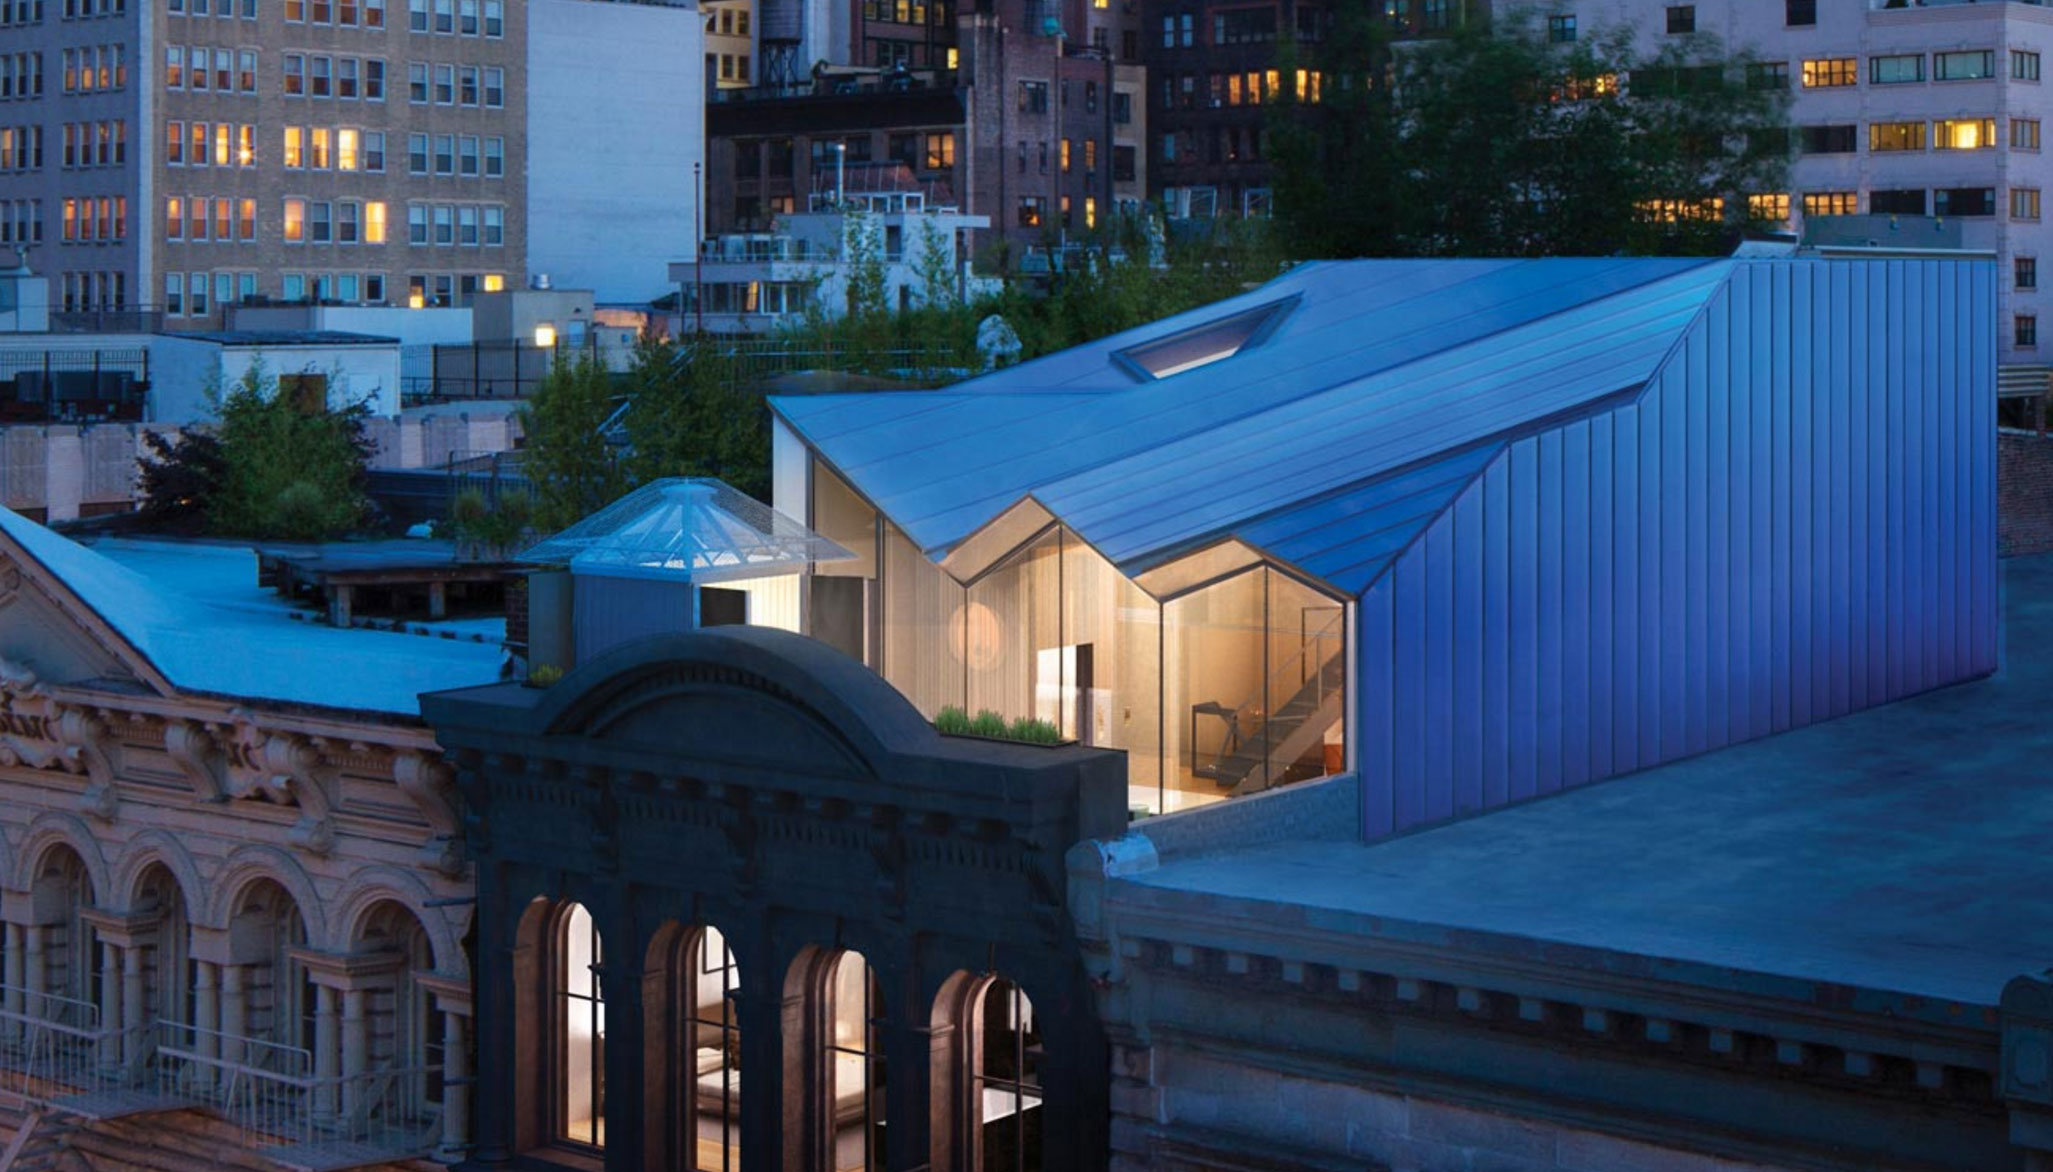 Very few people actually get to see this hidden rooftop penthouse